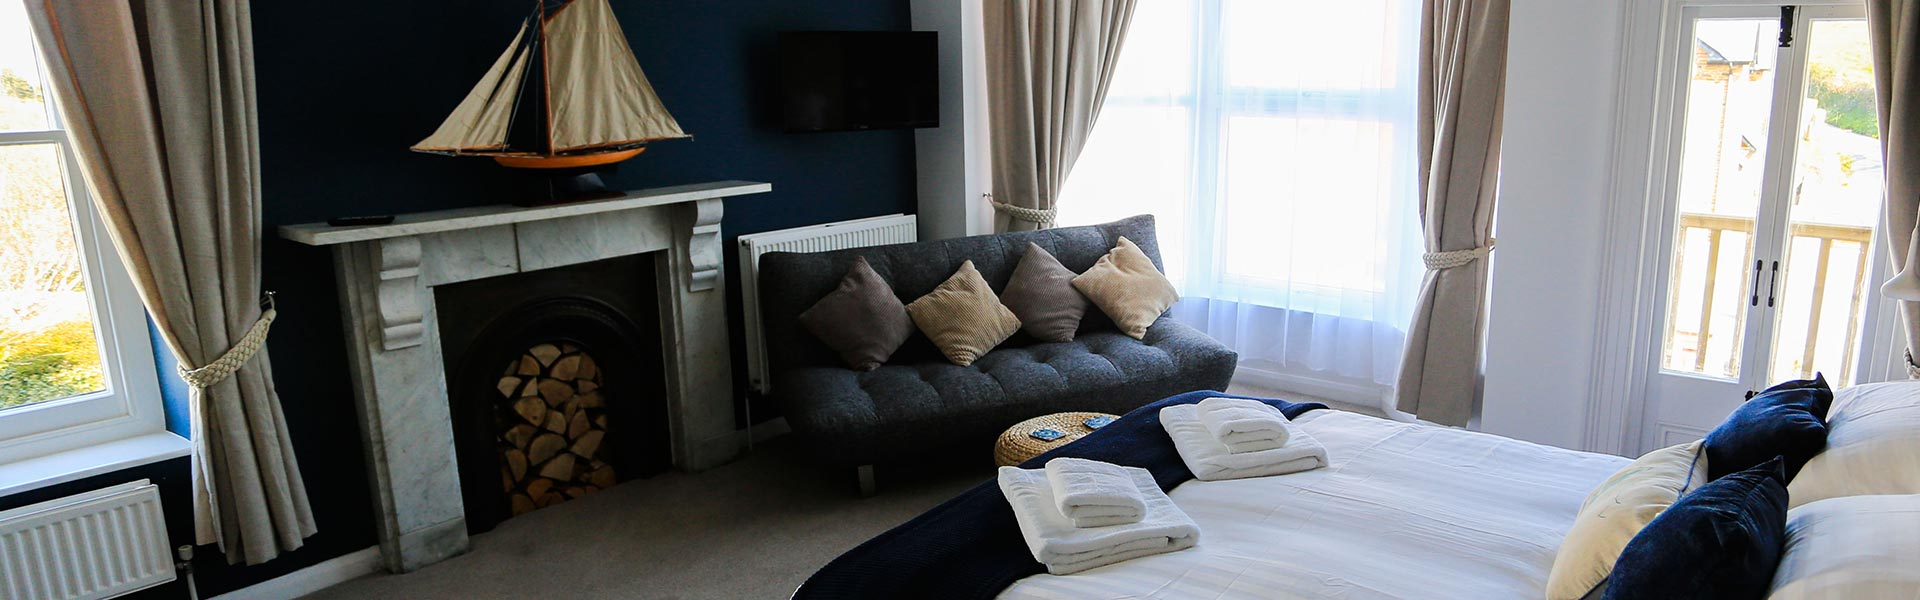 Accommodation in Mortehoe, Woolacombe, North Devon